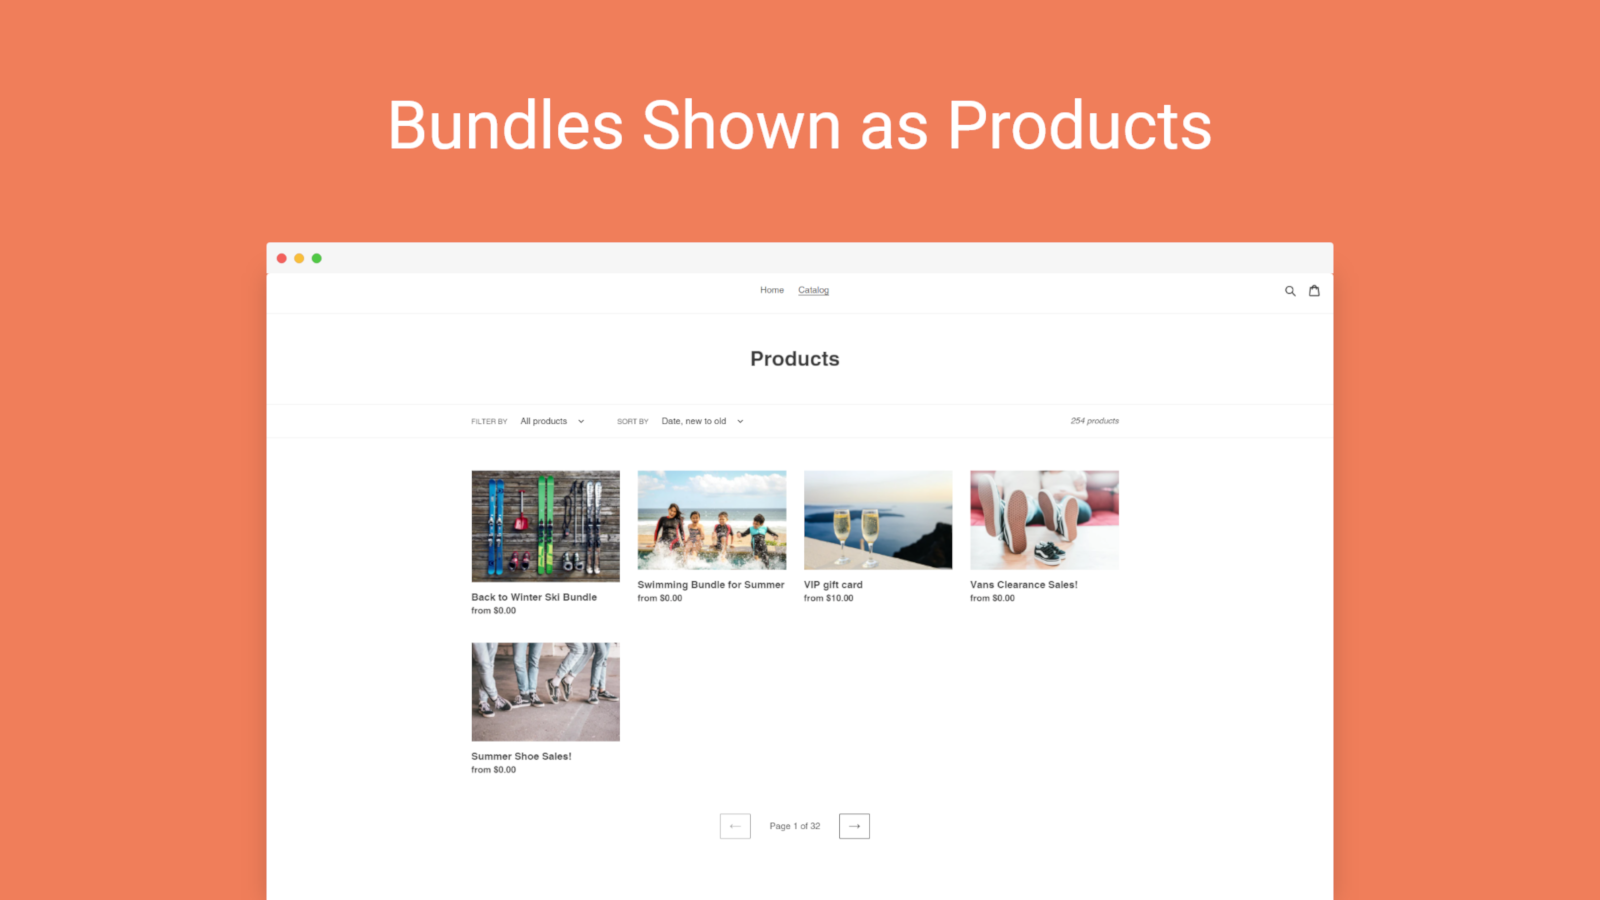 Assign Bundles to Collections or Home Page, Like Any Products